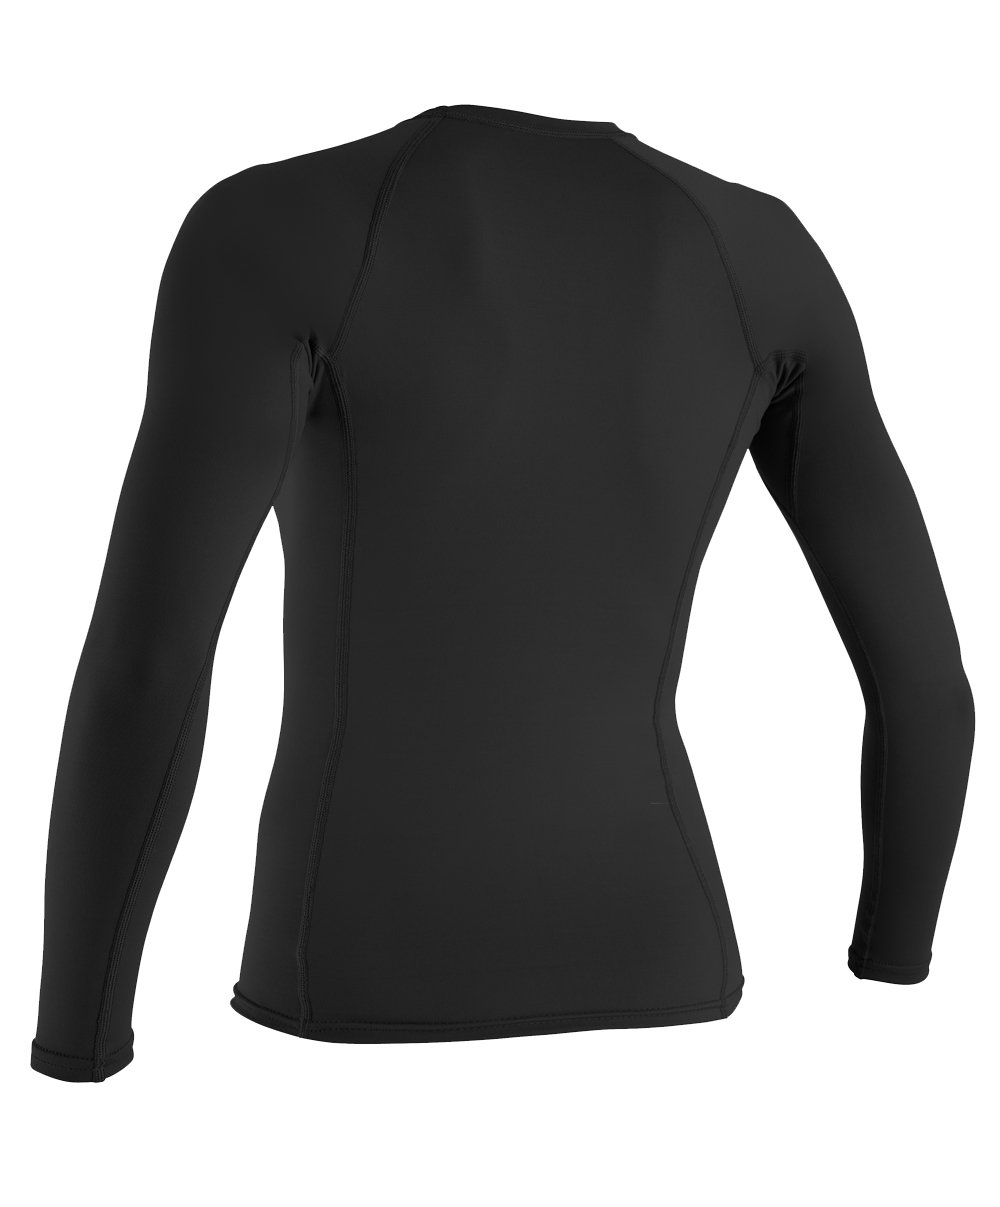 Galleon o 39 neill wetsuits uv sun protection womens basic for Uv long sleeve shirt womens